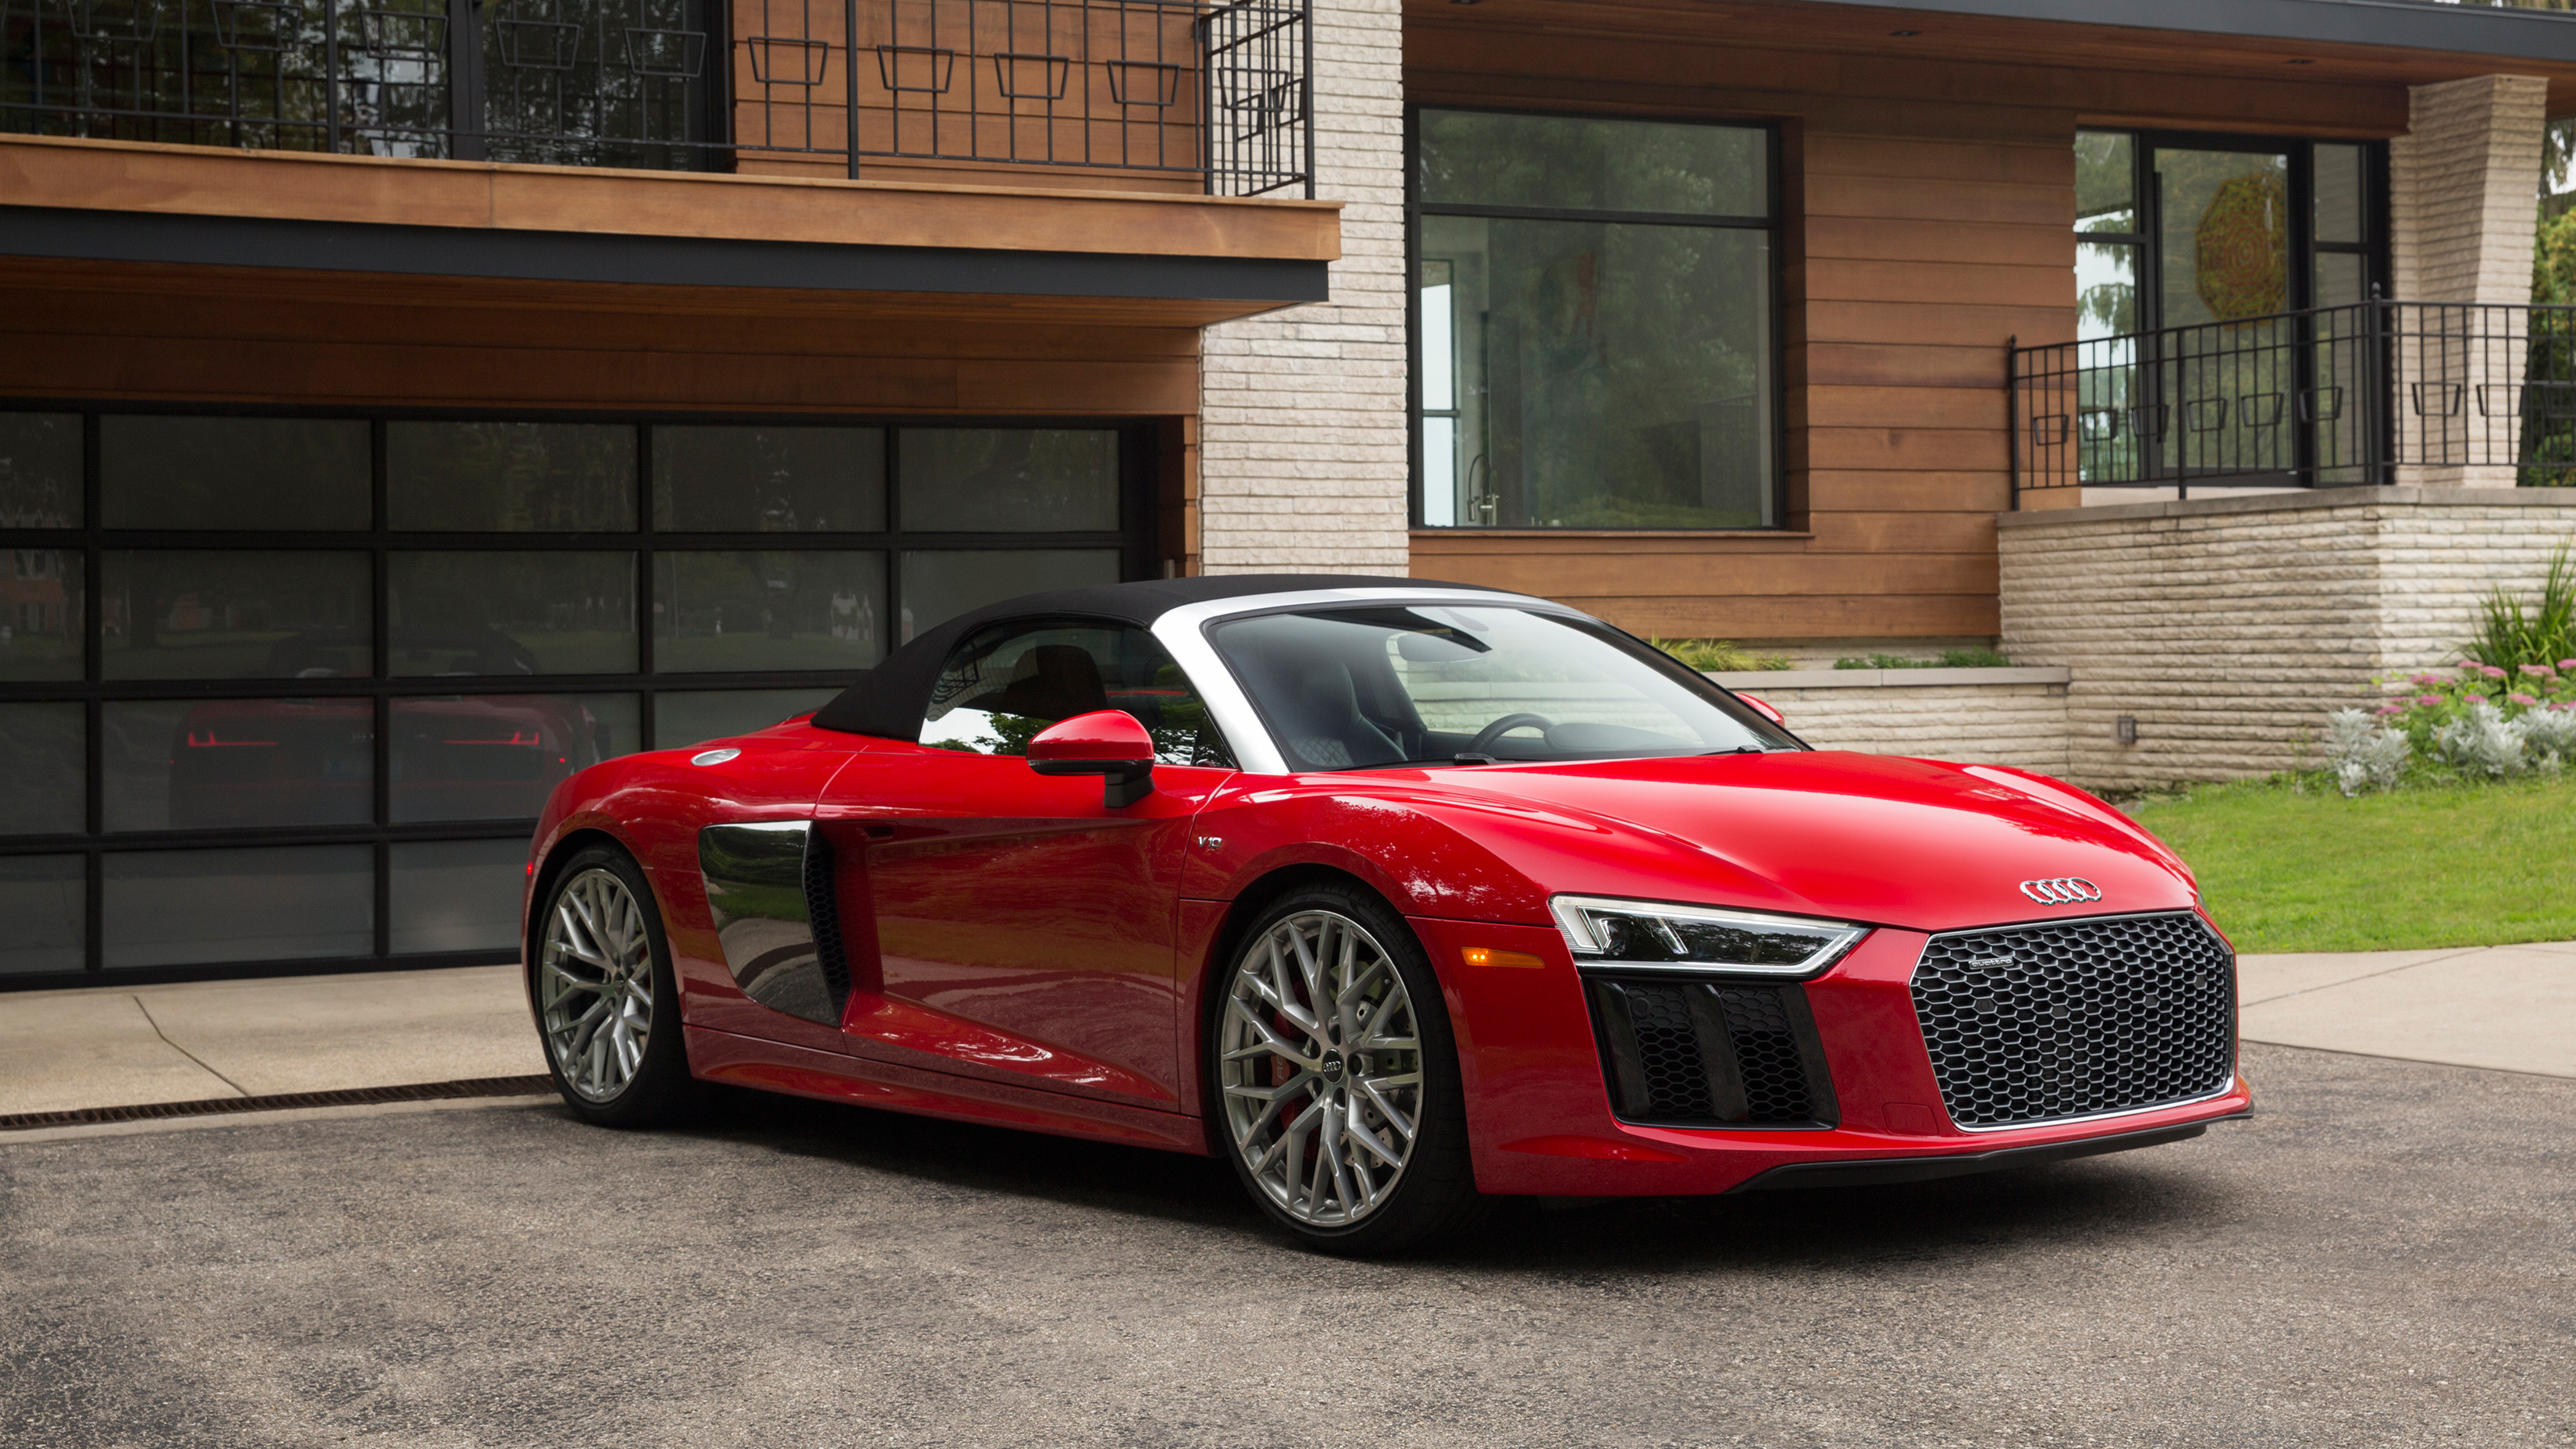 2018 audi r8 spyder v10 plus wallpaper hd car wallpapers id 8668. Black Bedroom Furniture Sets. Home Design Ideas